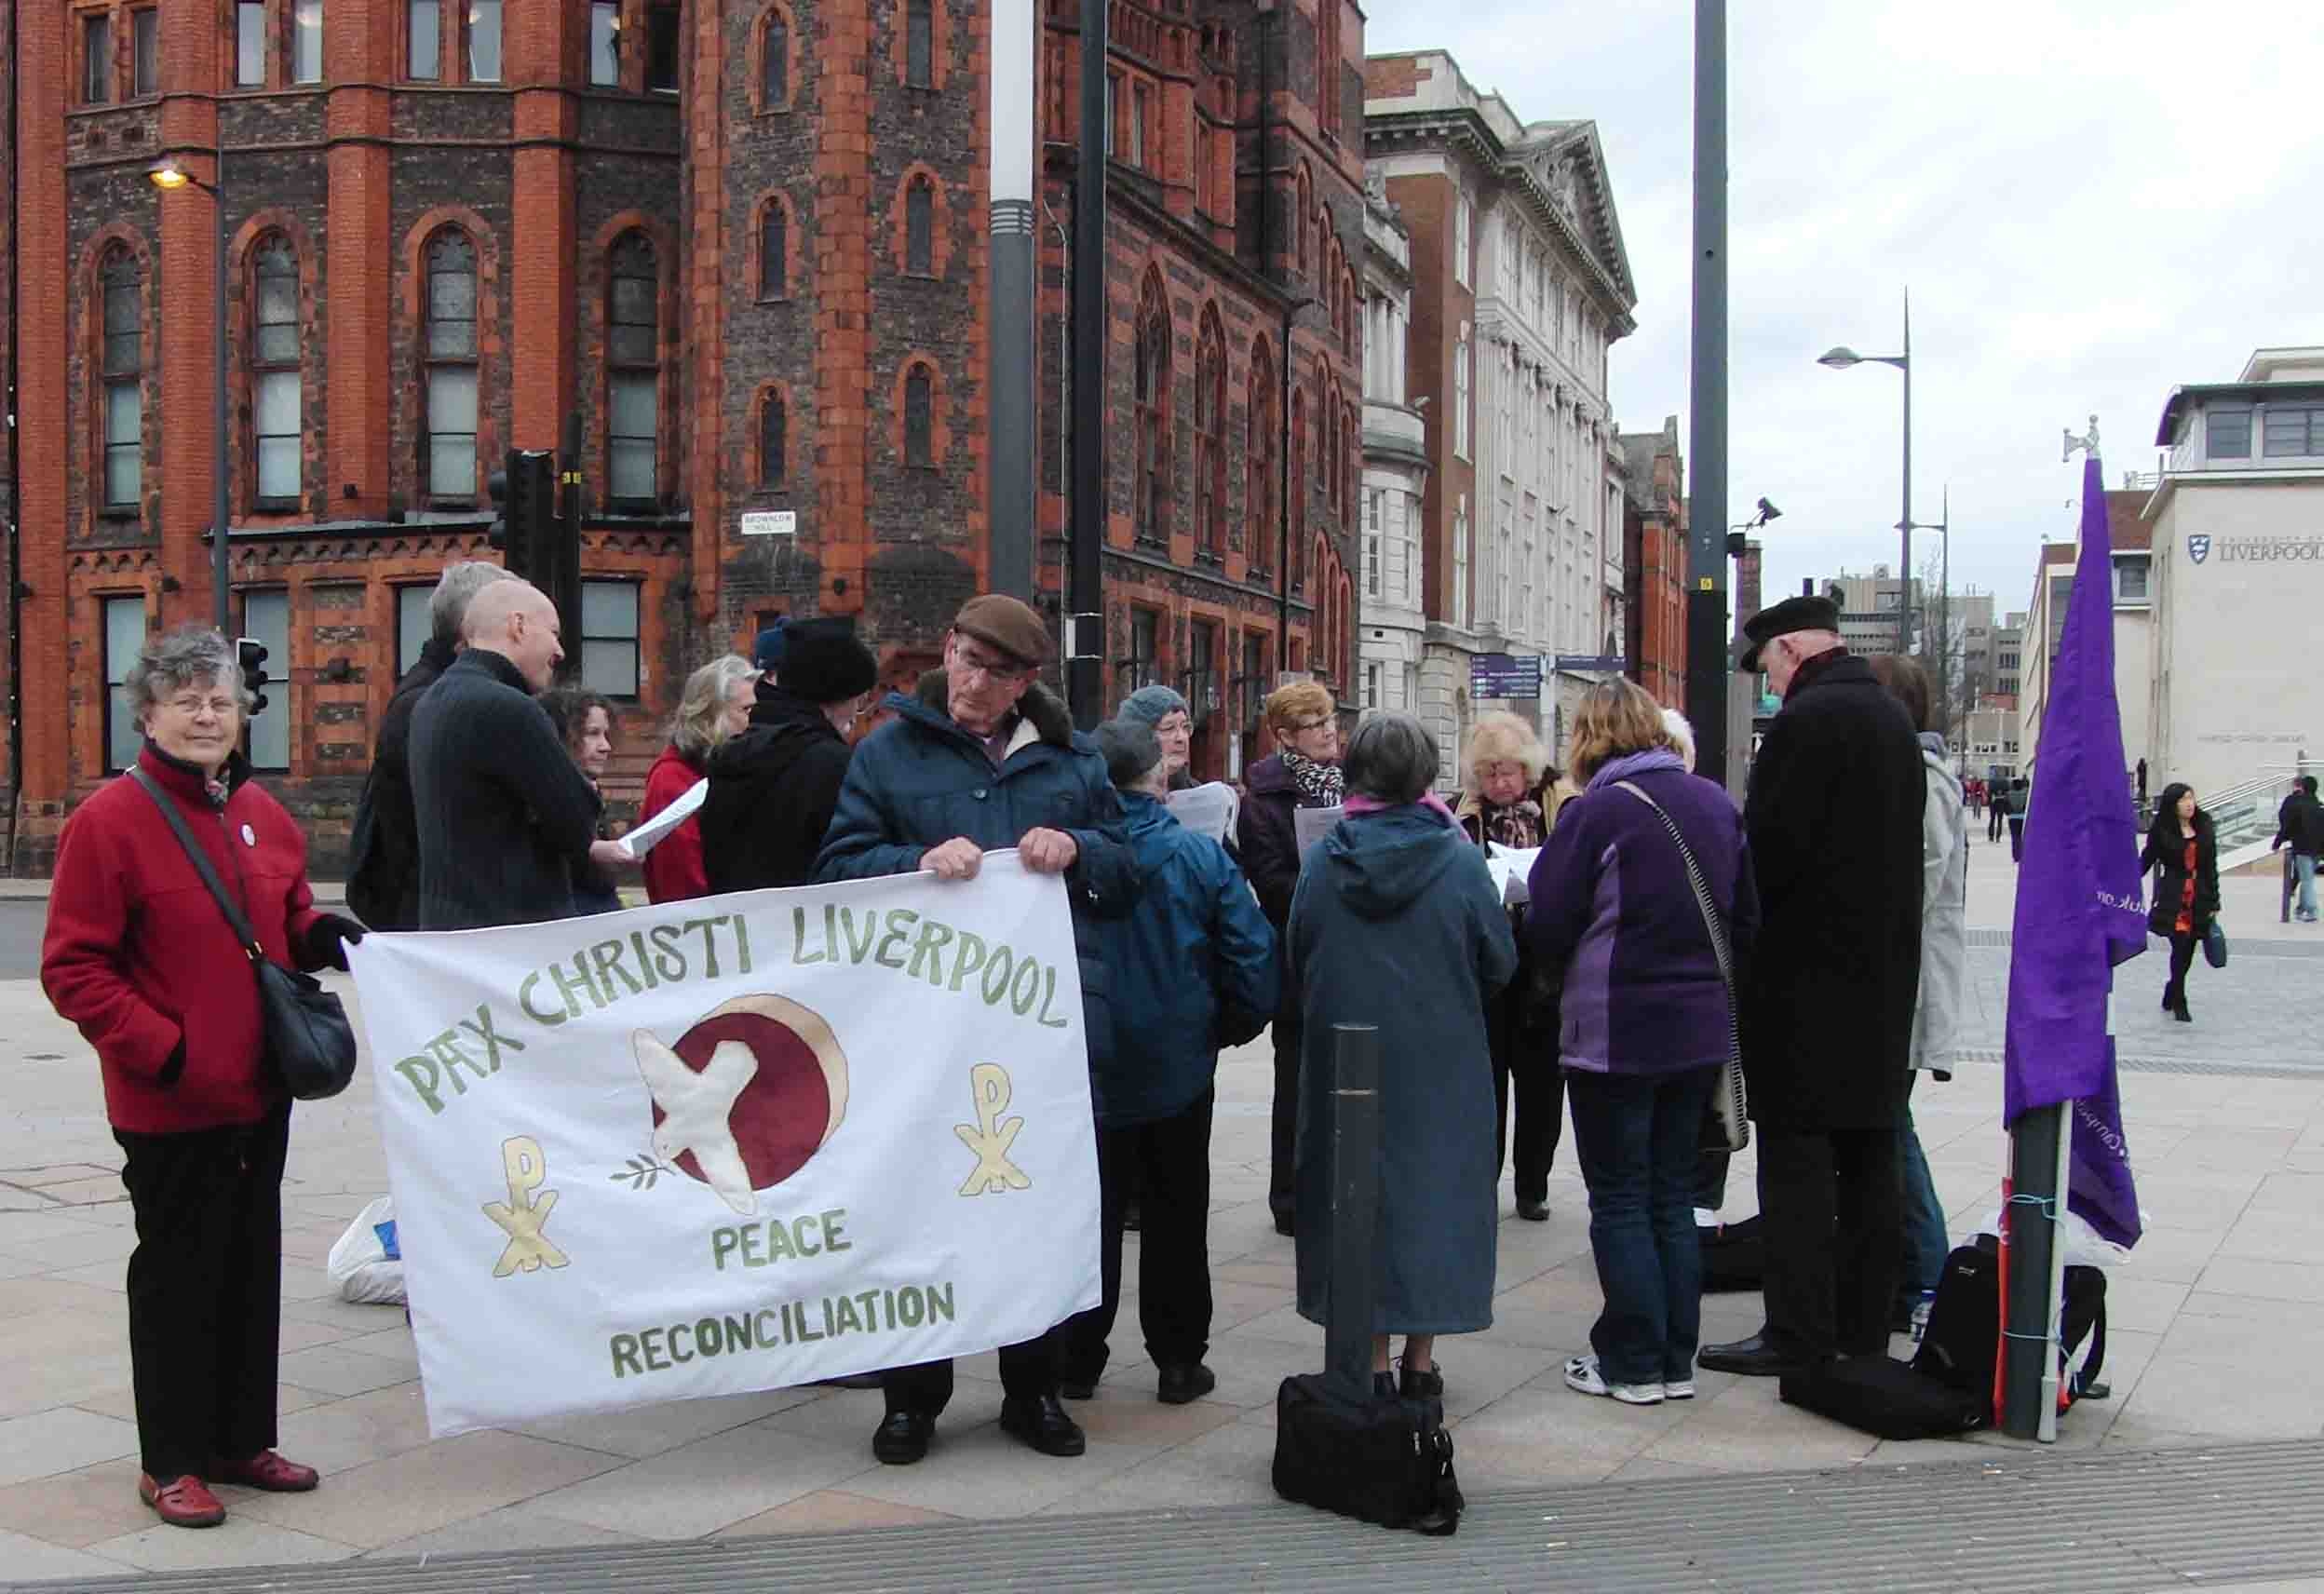 01e 5.3.14 Pax Christi Ash Wednesday drone witness at Liverpool University